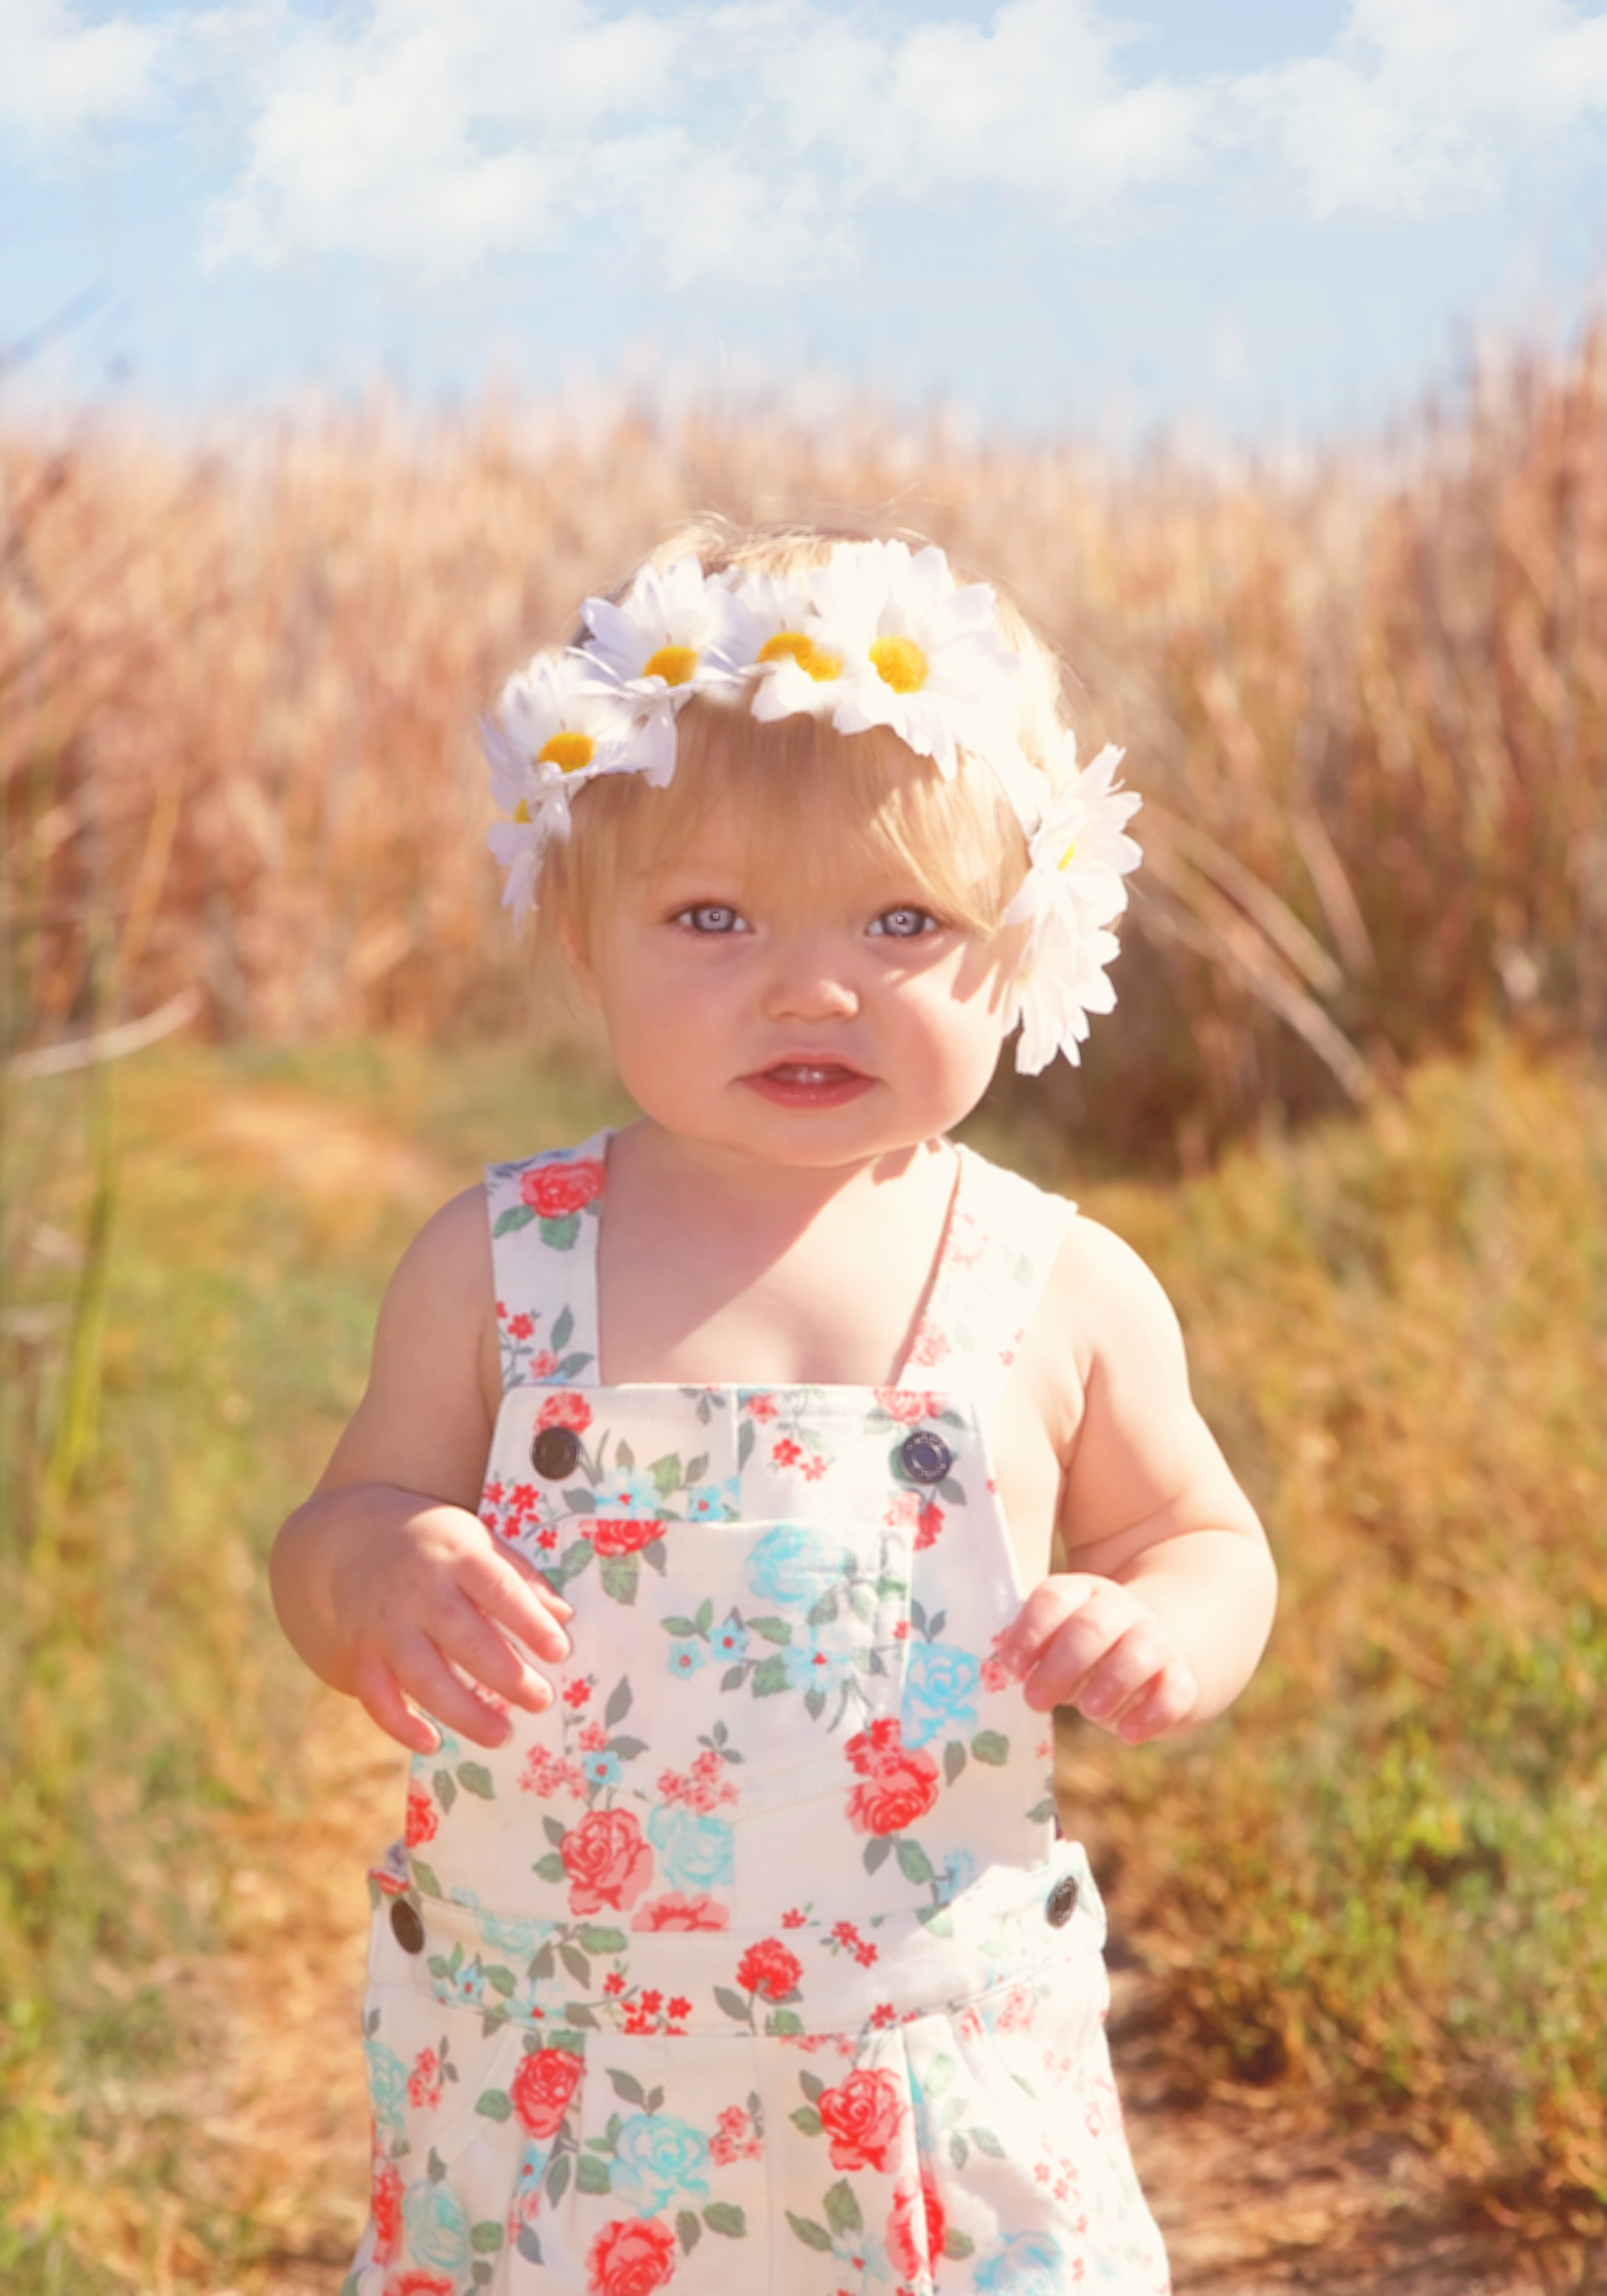 Baby Child Photography | Lifestyle Portrait Photography | Lacey O